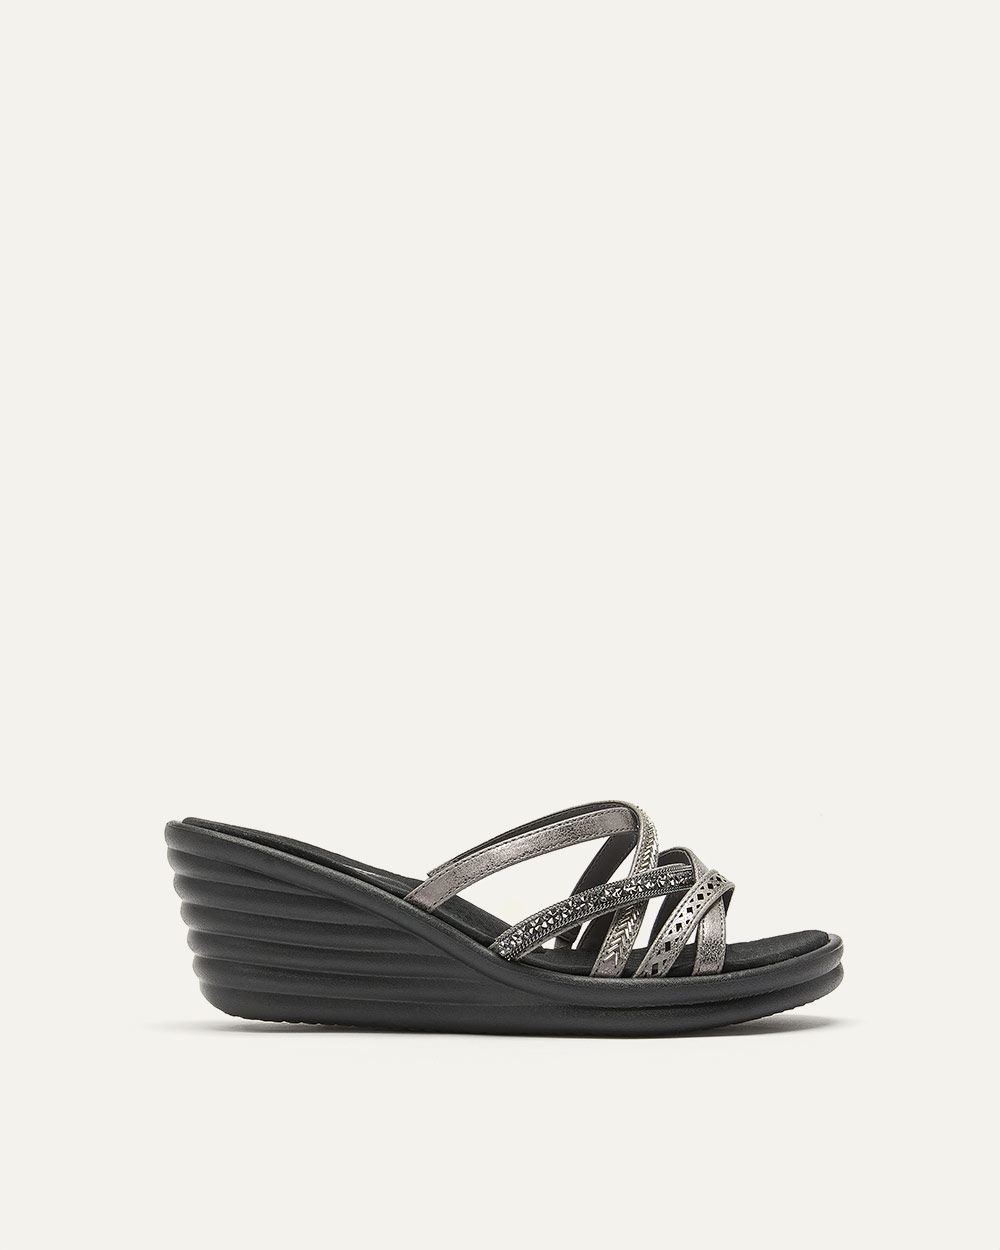 Wedge Sandals with Crossed Straps - Skechers